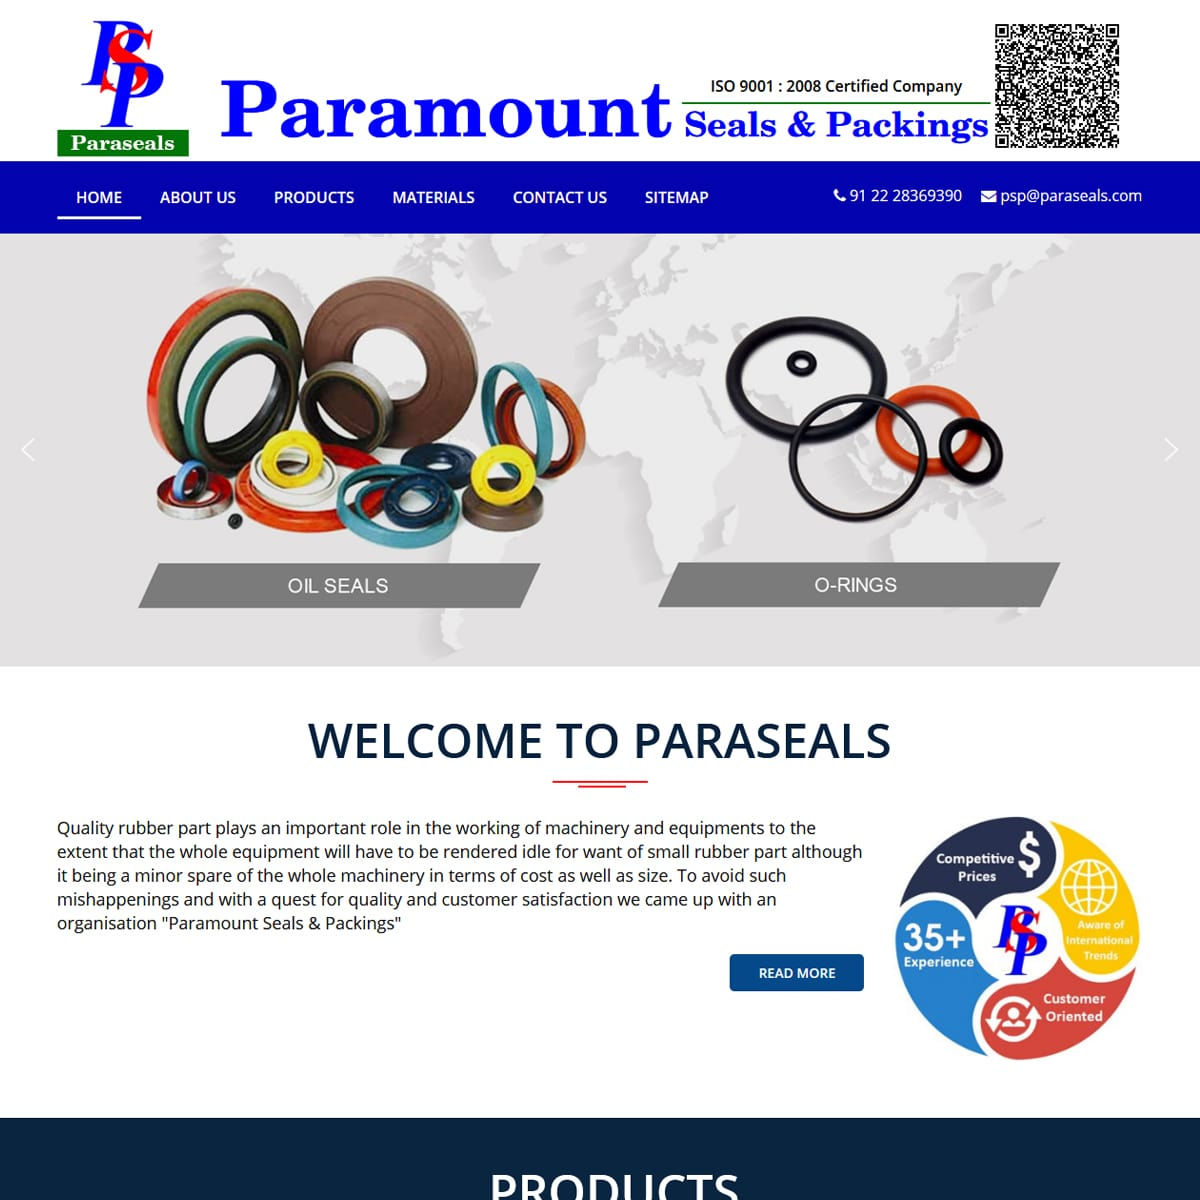 Paramount Seals & Packaging